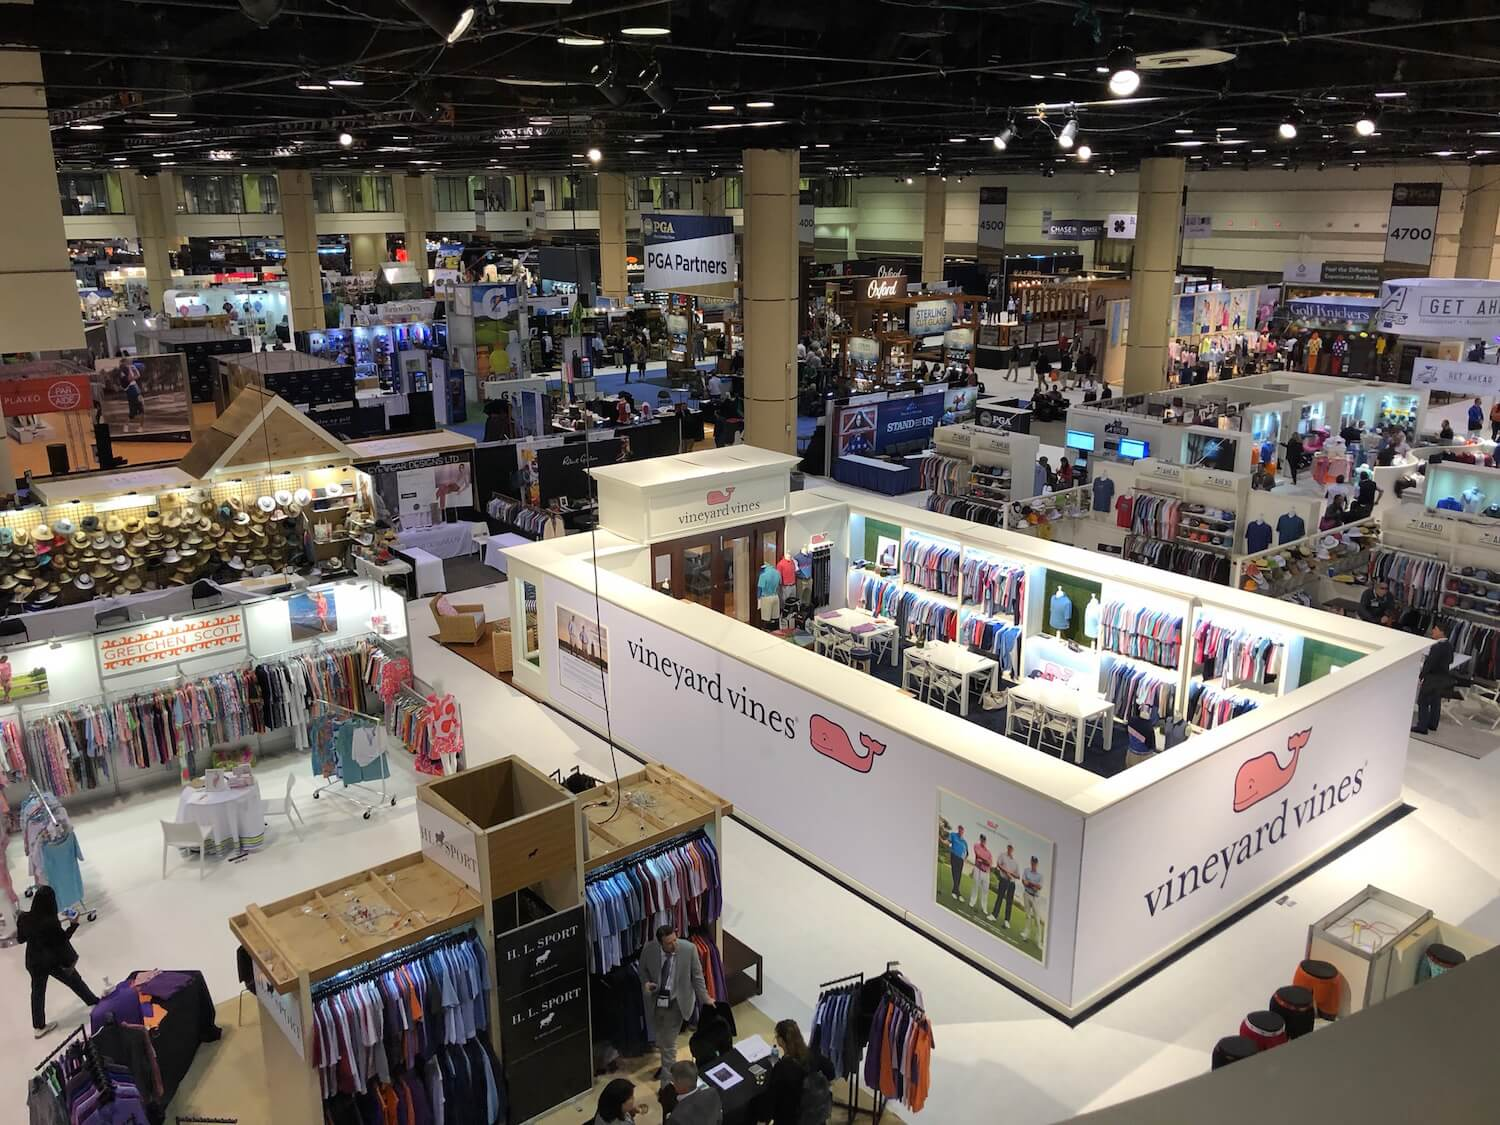 The Newest Technology At The 2018 PGA Merchandise Show